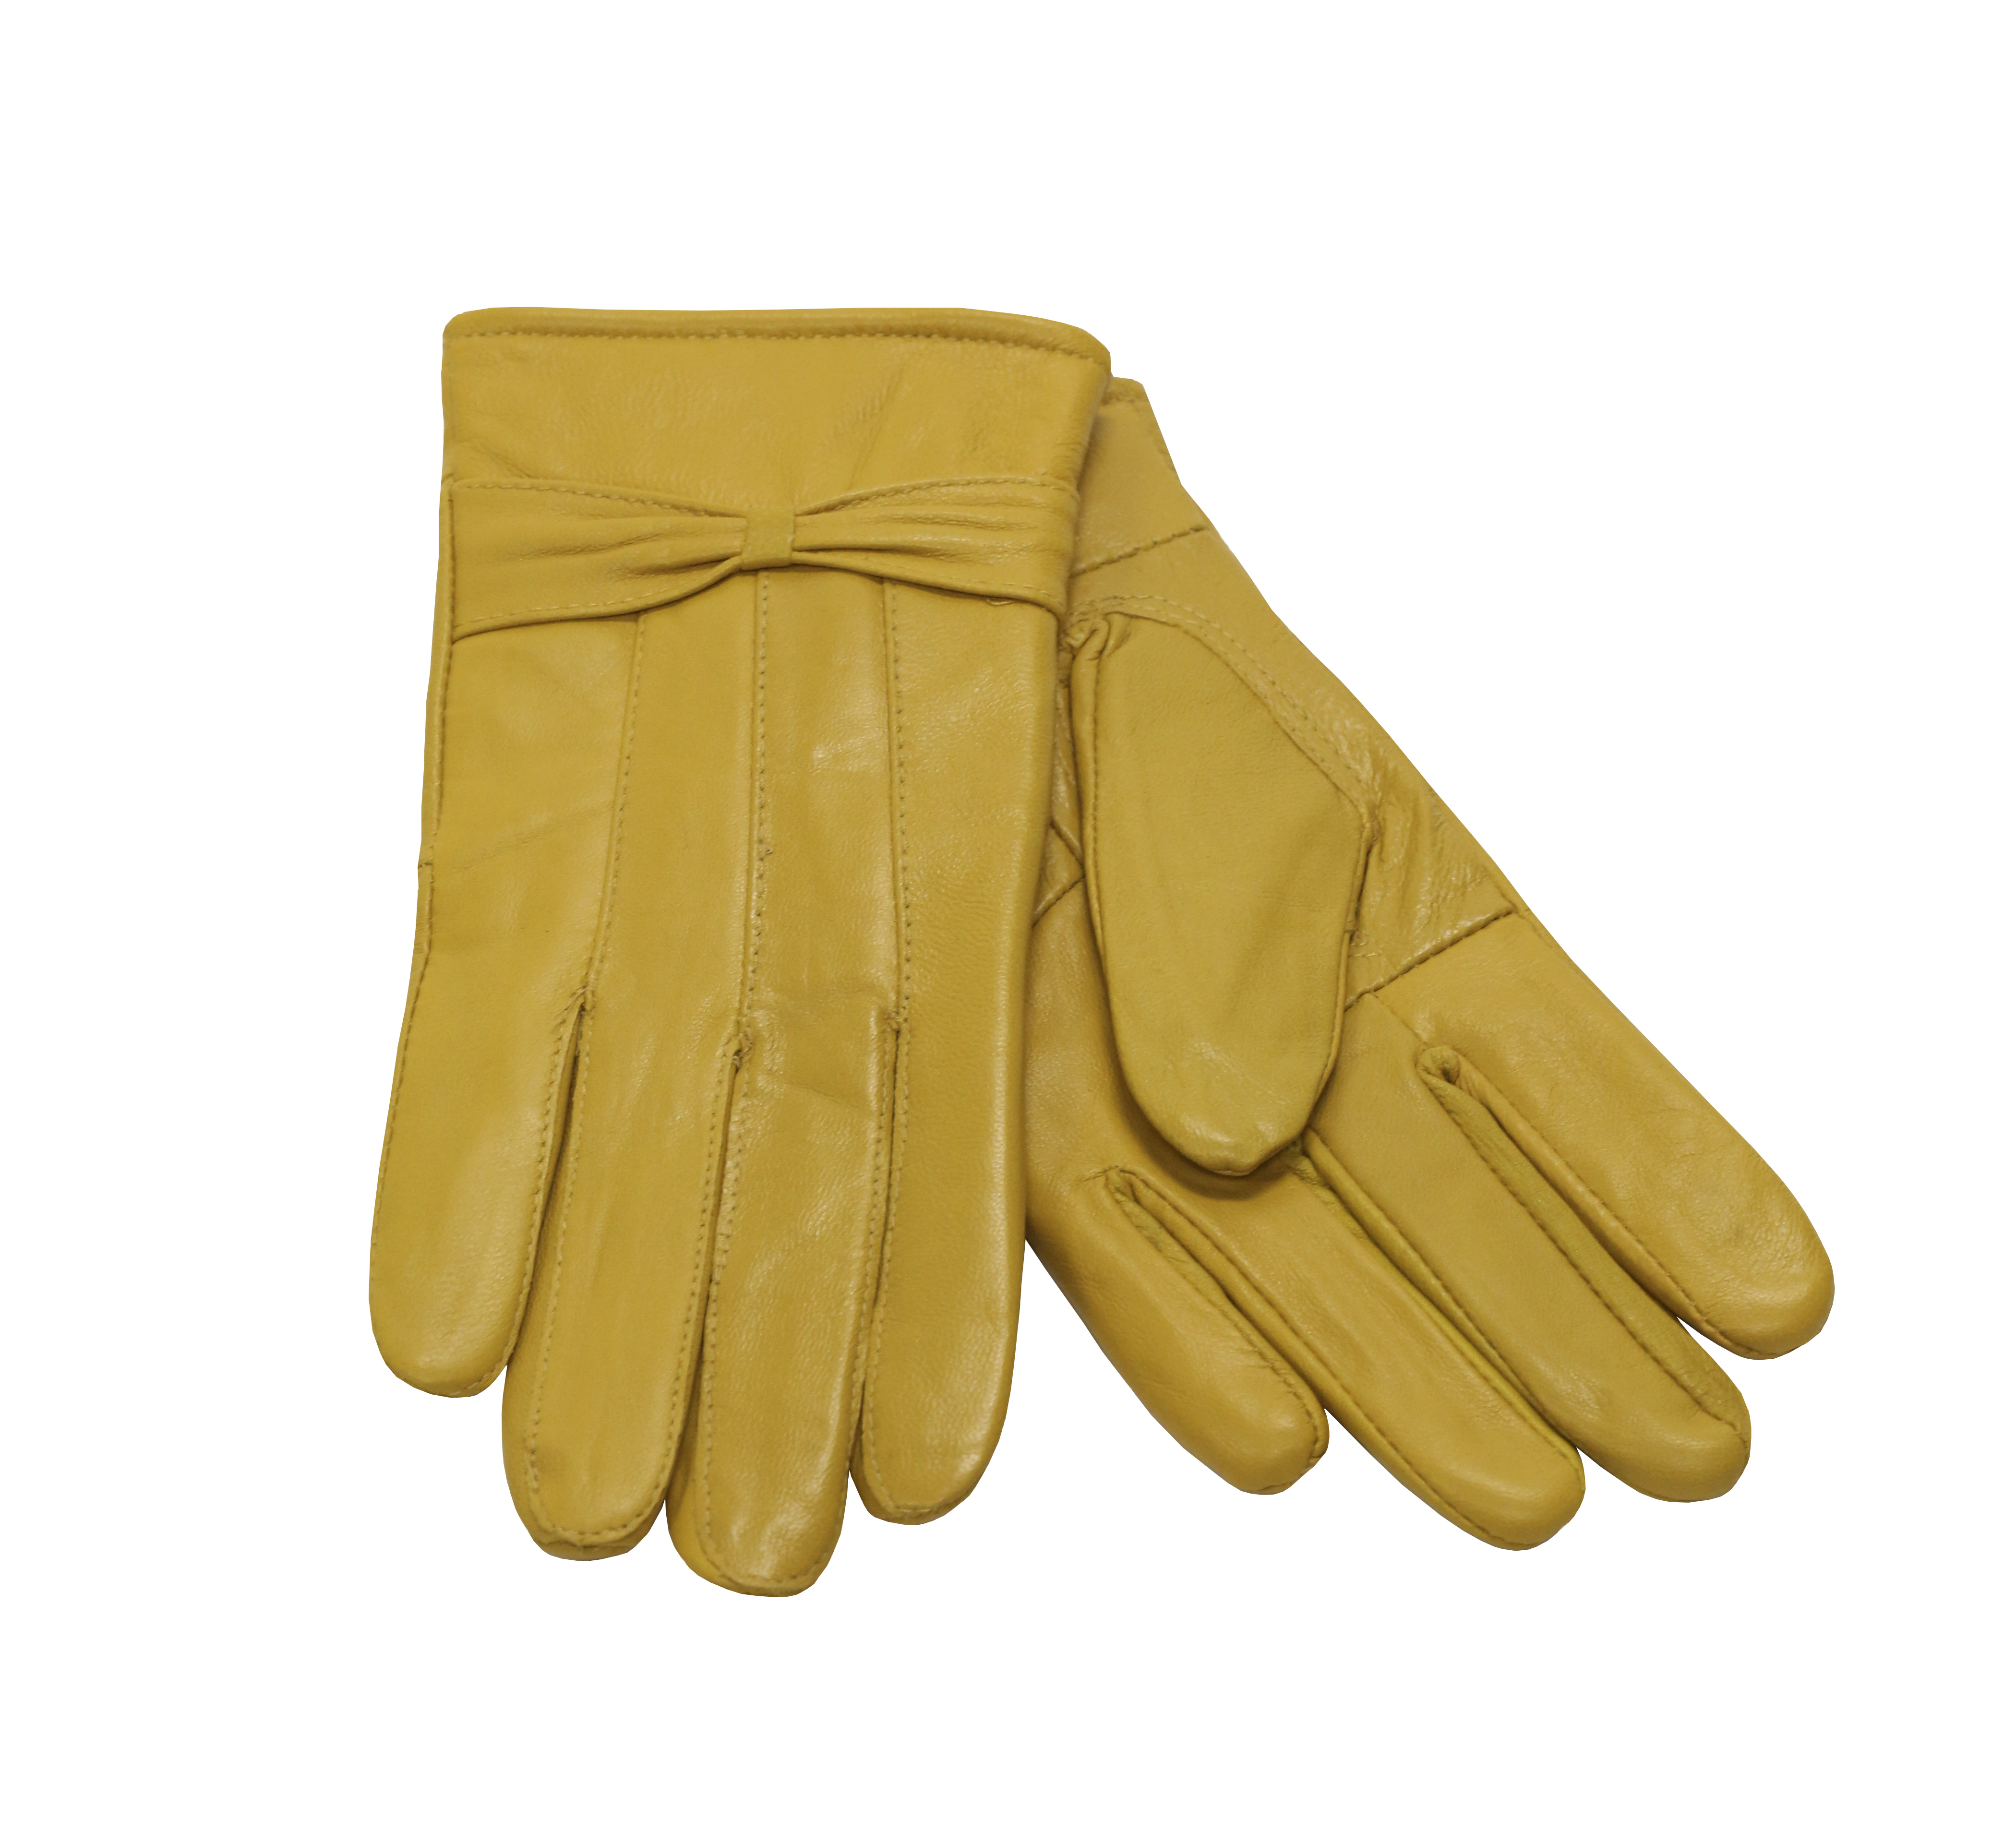 MoDA Ms Barcelona Womens Genuine Leather Assorted Colors Cold Weather Gloves with Bow C0101 Gold